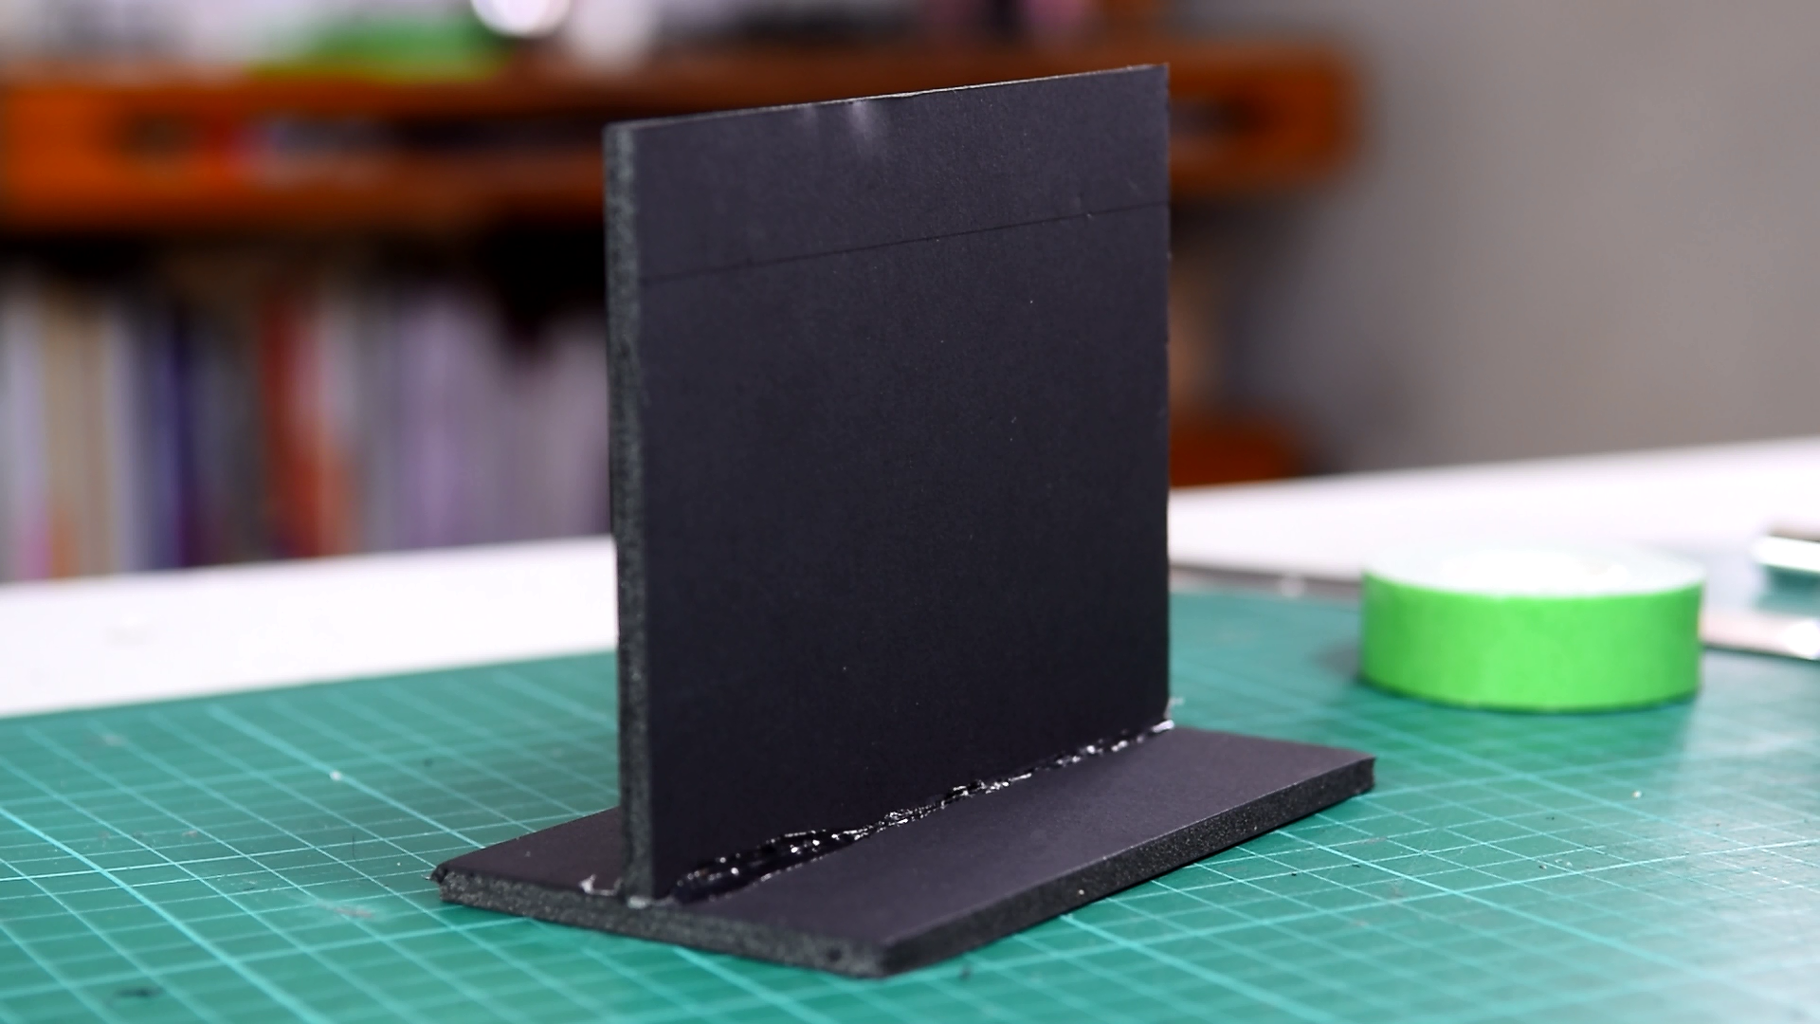 Build the Phone Stand